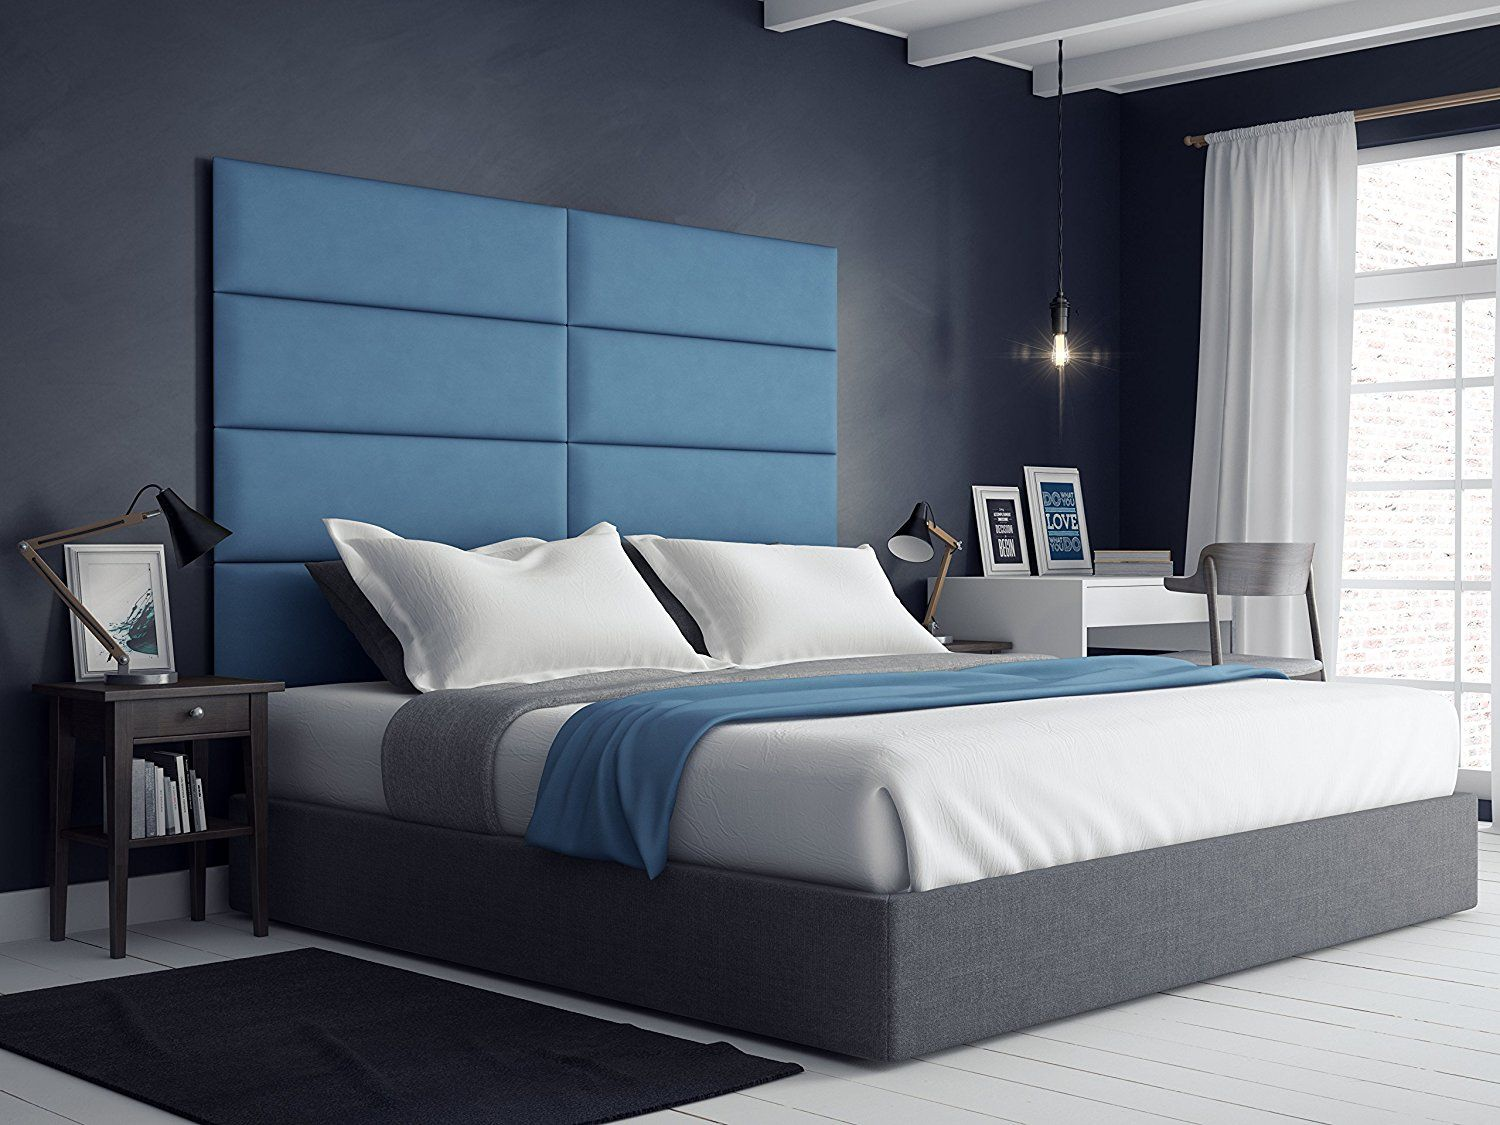 Rest easy surrounded in a cozy and padded suede blue kingsize headboard from @vanpanels! & Rest easy surrounded in a cozy and padded suede blue kingsize ... pillowsntoast.com